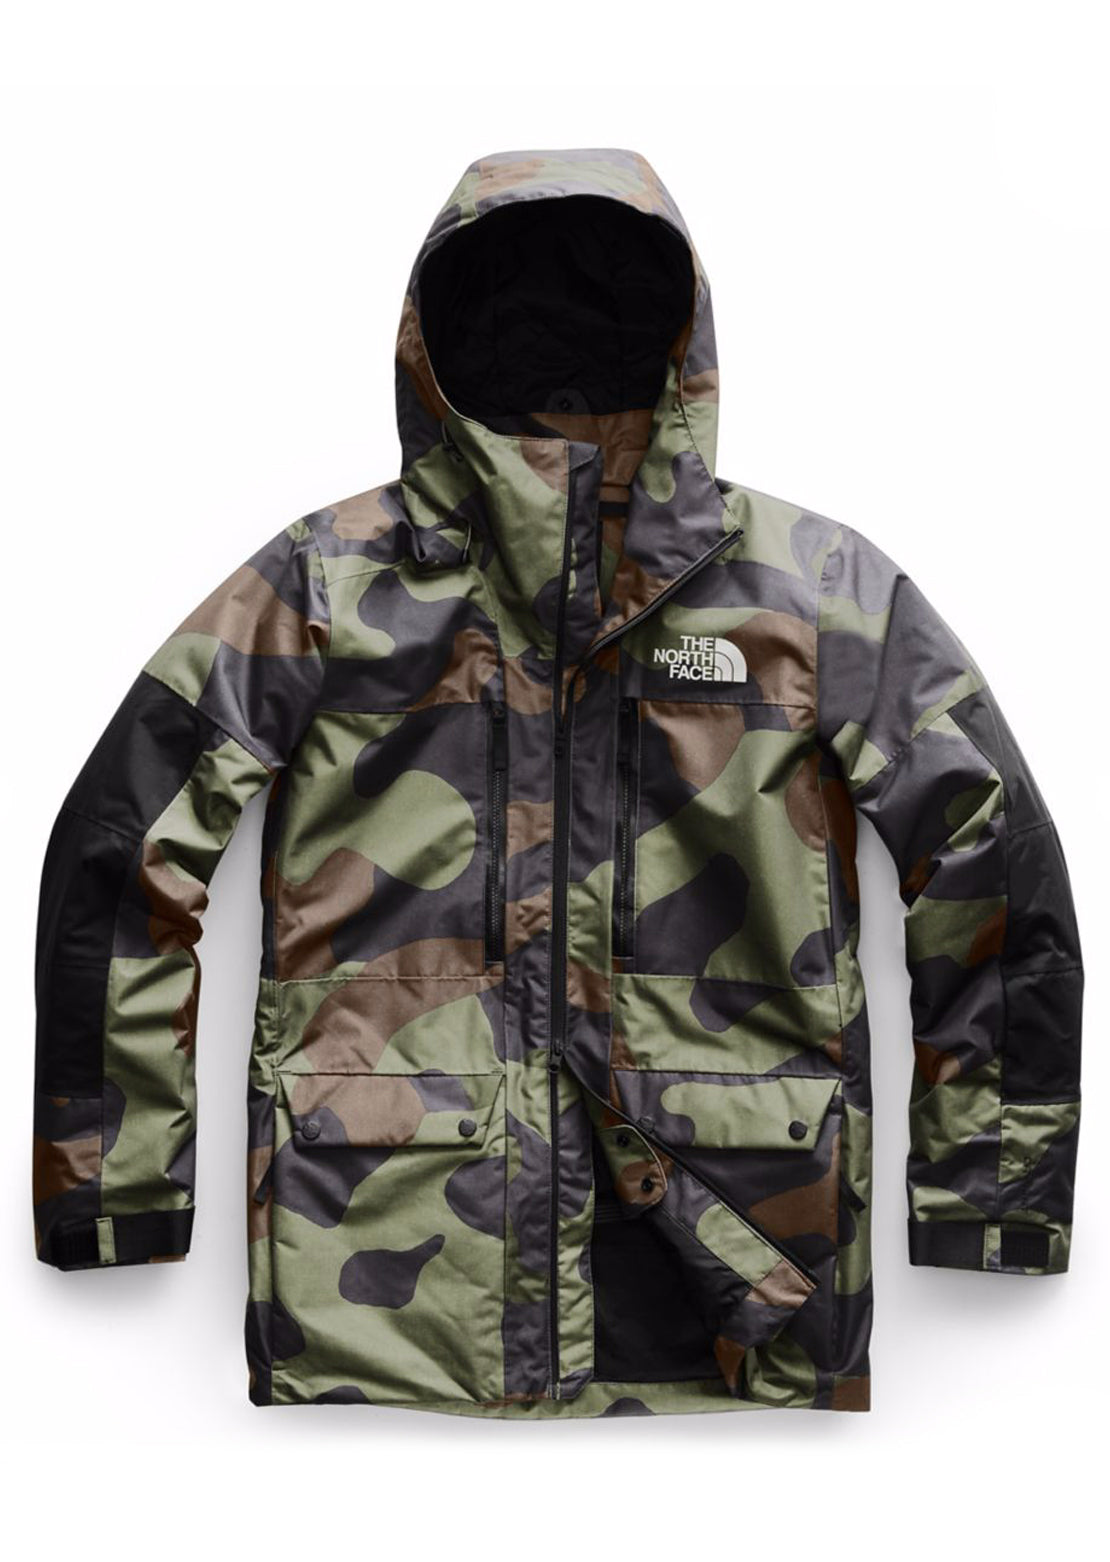 The North Face Men's Goldmill Parka Jacket Four Leaf Clover Terra Camo Print